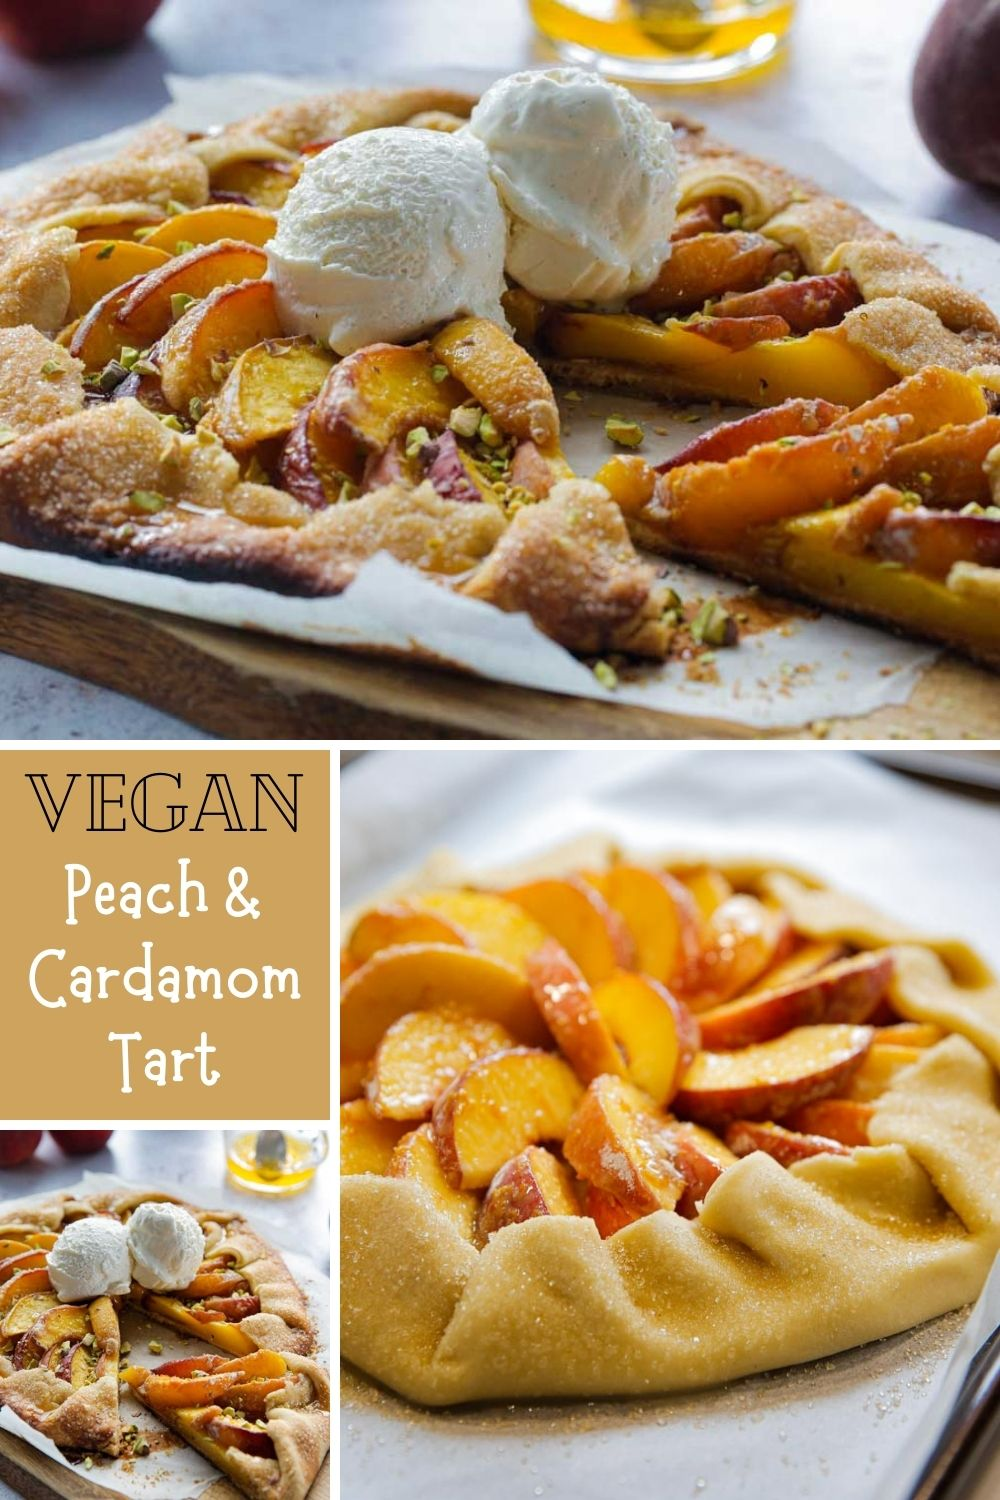 This easy, vegan peach tart is summer in every bite! Super simple homemade pastry brimming with fresh, juicy peaches served warm with a sweet orange and cardamom drizzle | recipe on thecookandhim.com | #vegan #vegandessert #peachtart #summertart #peaches #veganbaking #veganrecipe #veganpastry